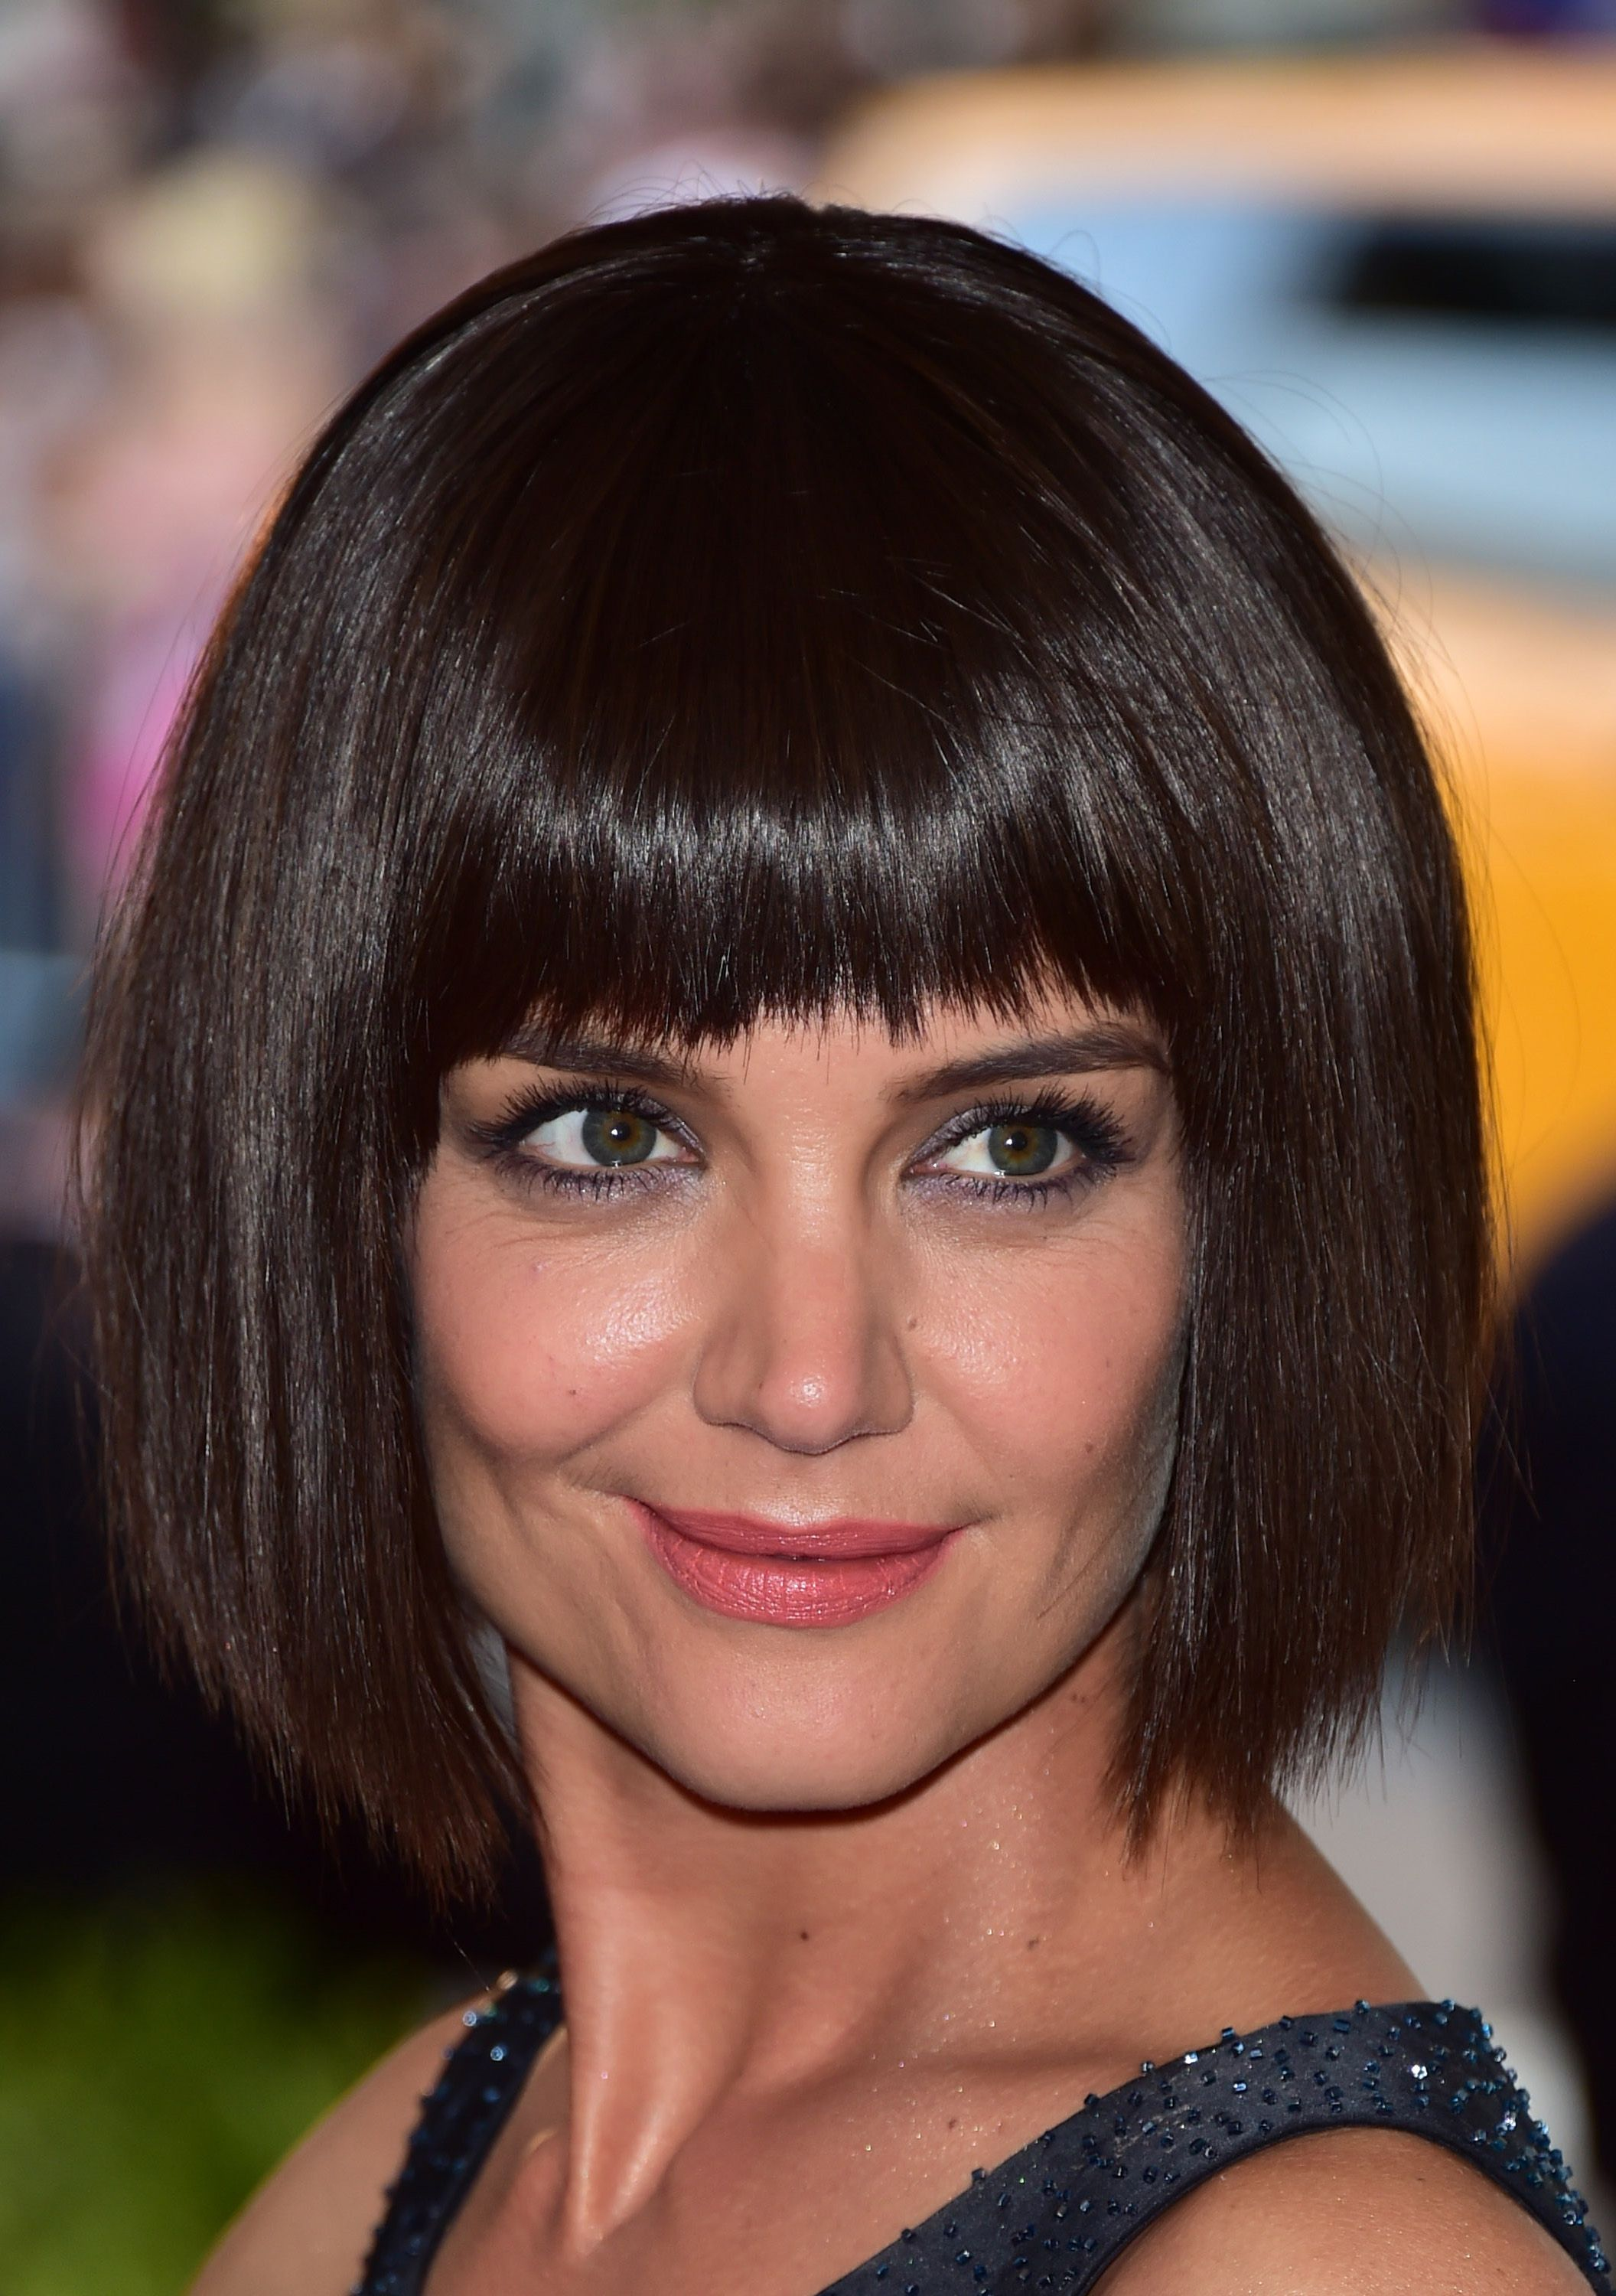 45 Cute Short Haircuts For Women 2020 - Short Celebrity